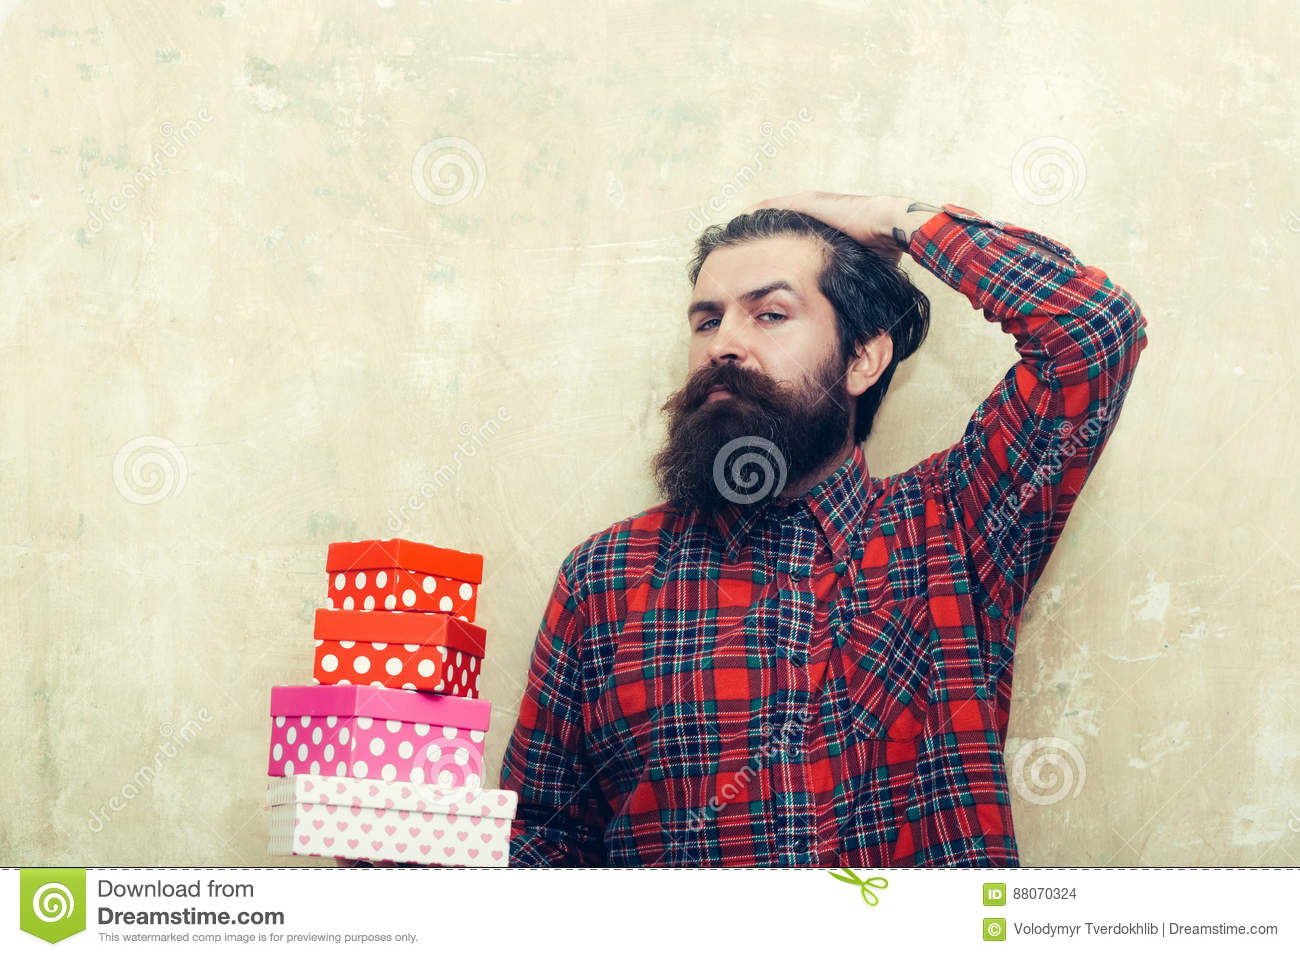 Serious bearded man holding colorful gift boxes stacked in hands